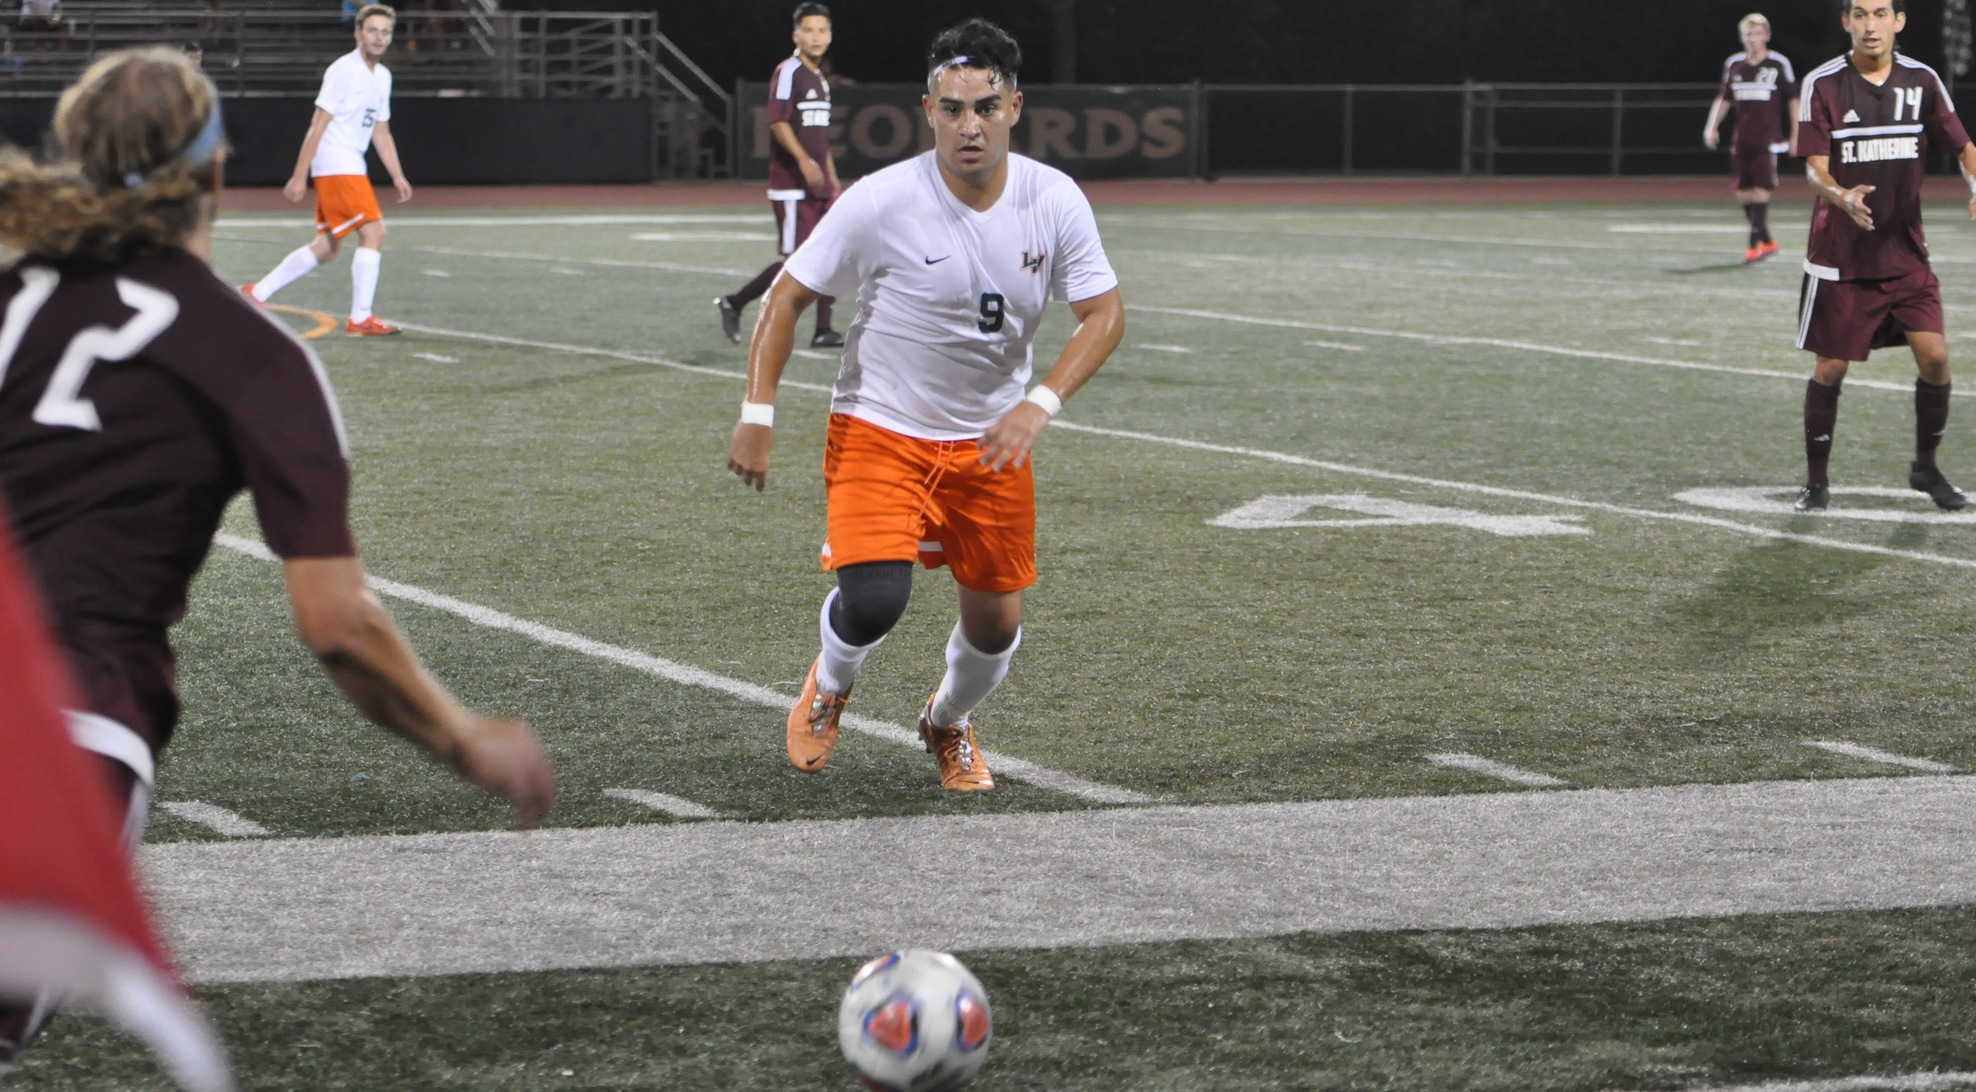 Men's Soccer rolls past St. Katherine in season opener